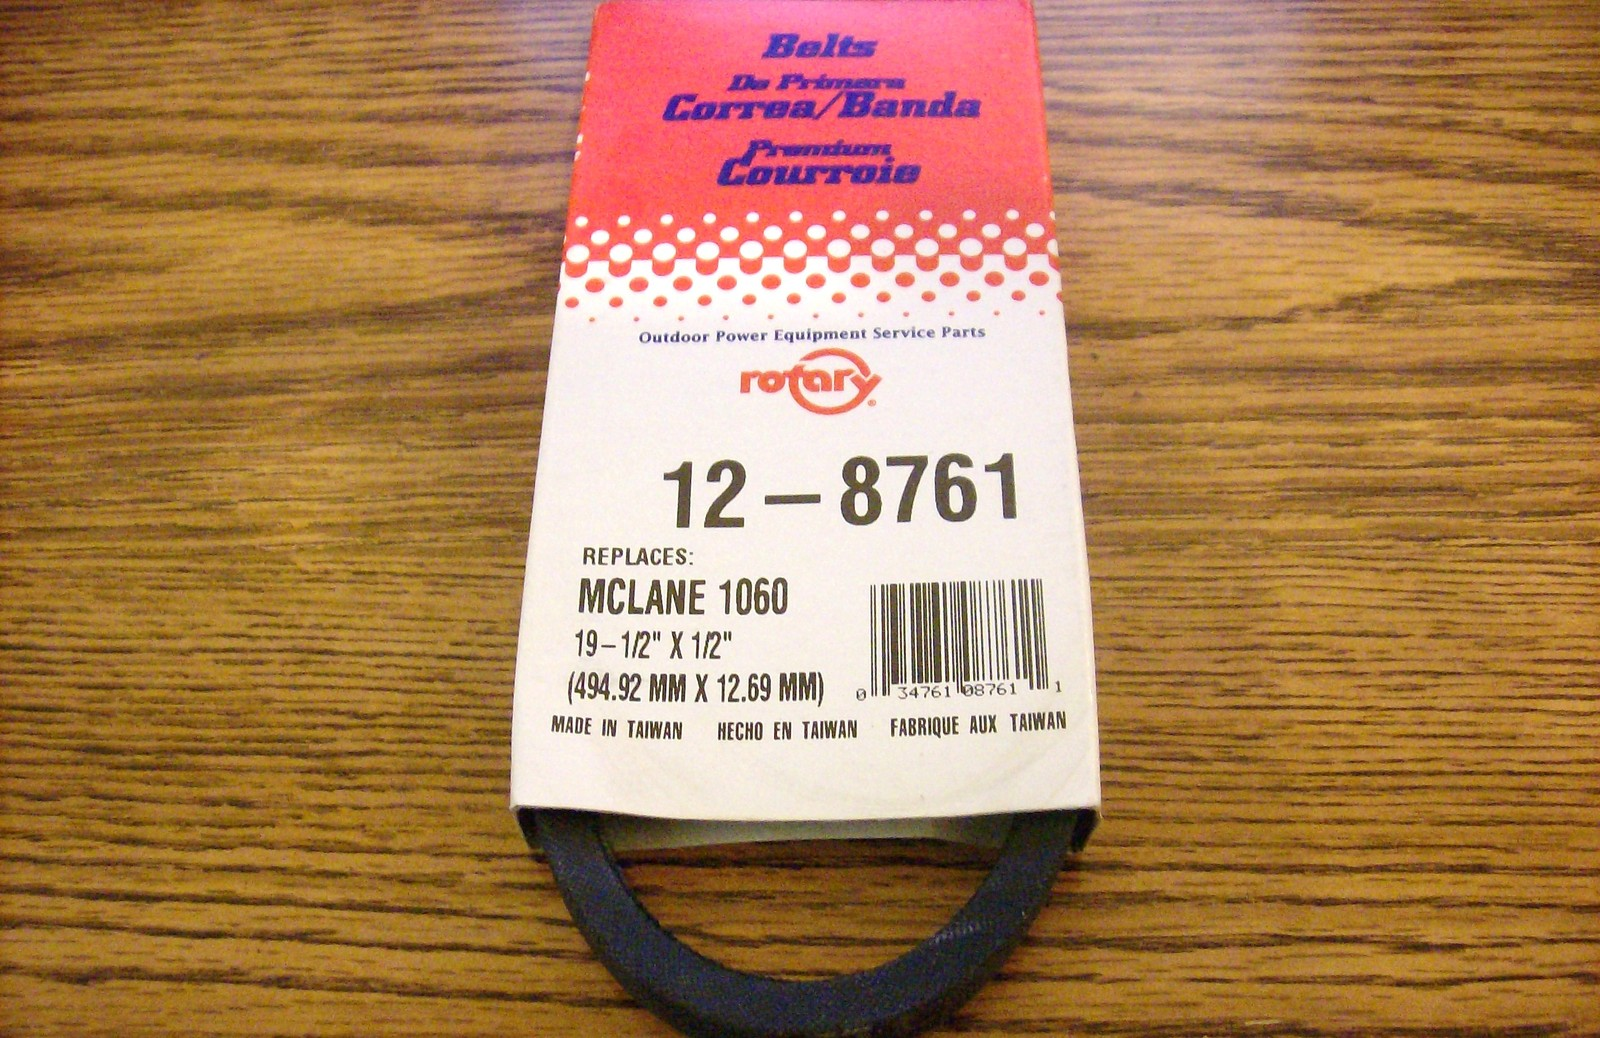 """Mclane and Craftsman 20"""" Cut Drive Belt 1060B, 1060, for front throw lawn mower - $7.99"""